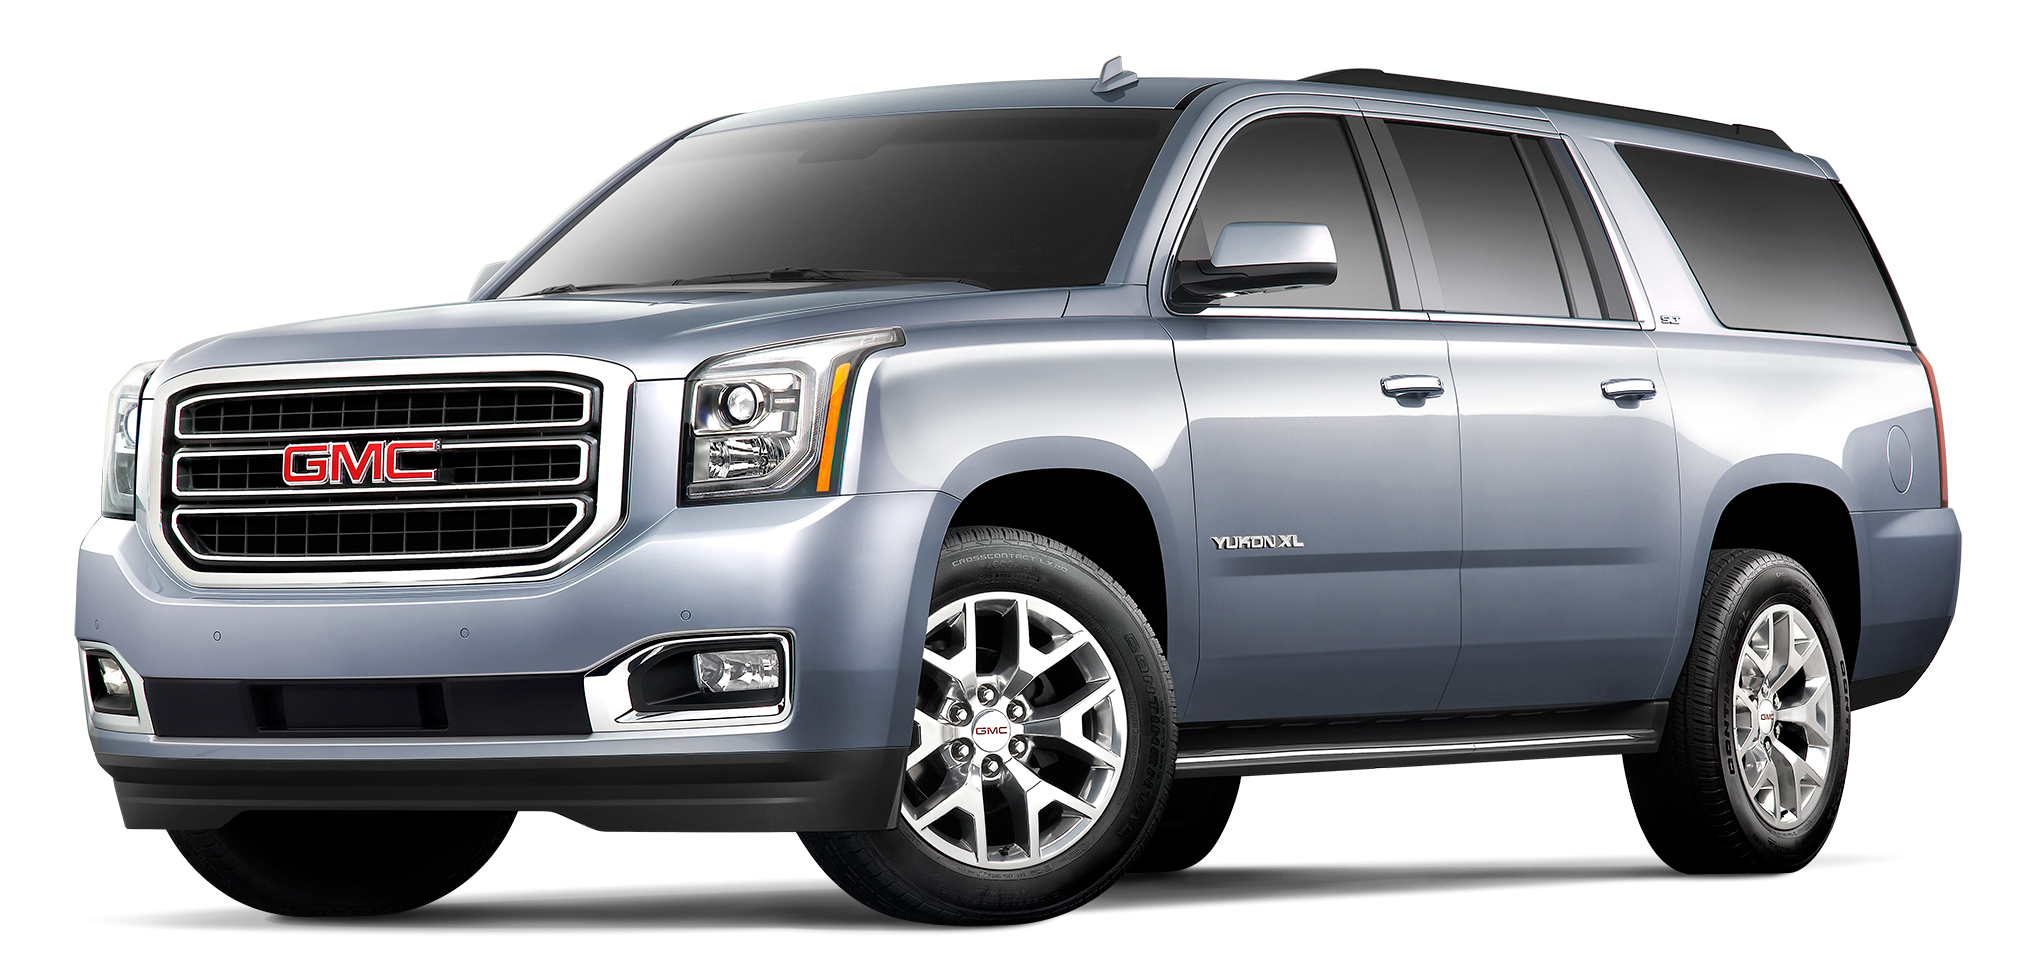 GMC Yukon XL Quicksilver